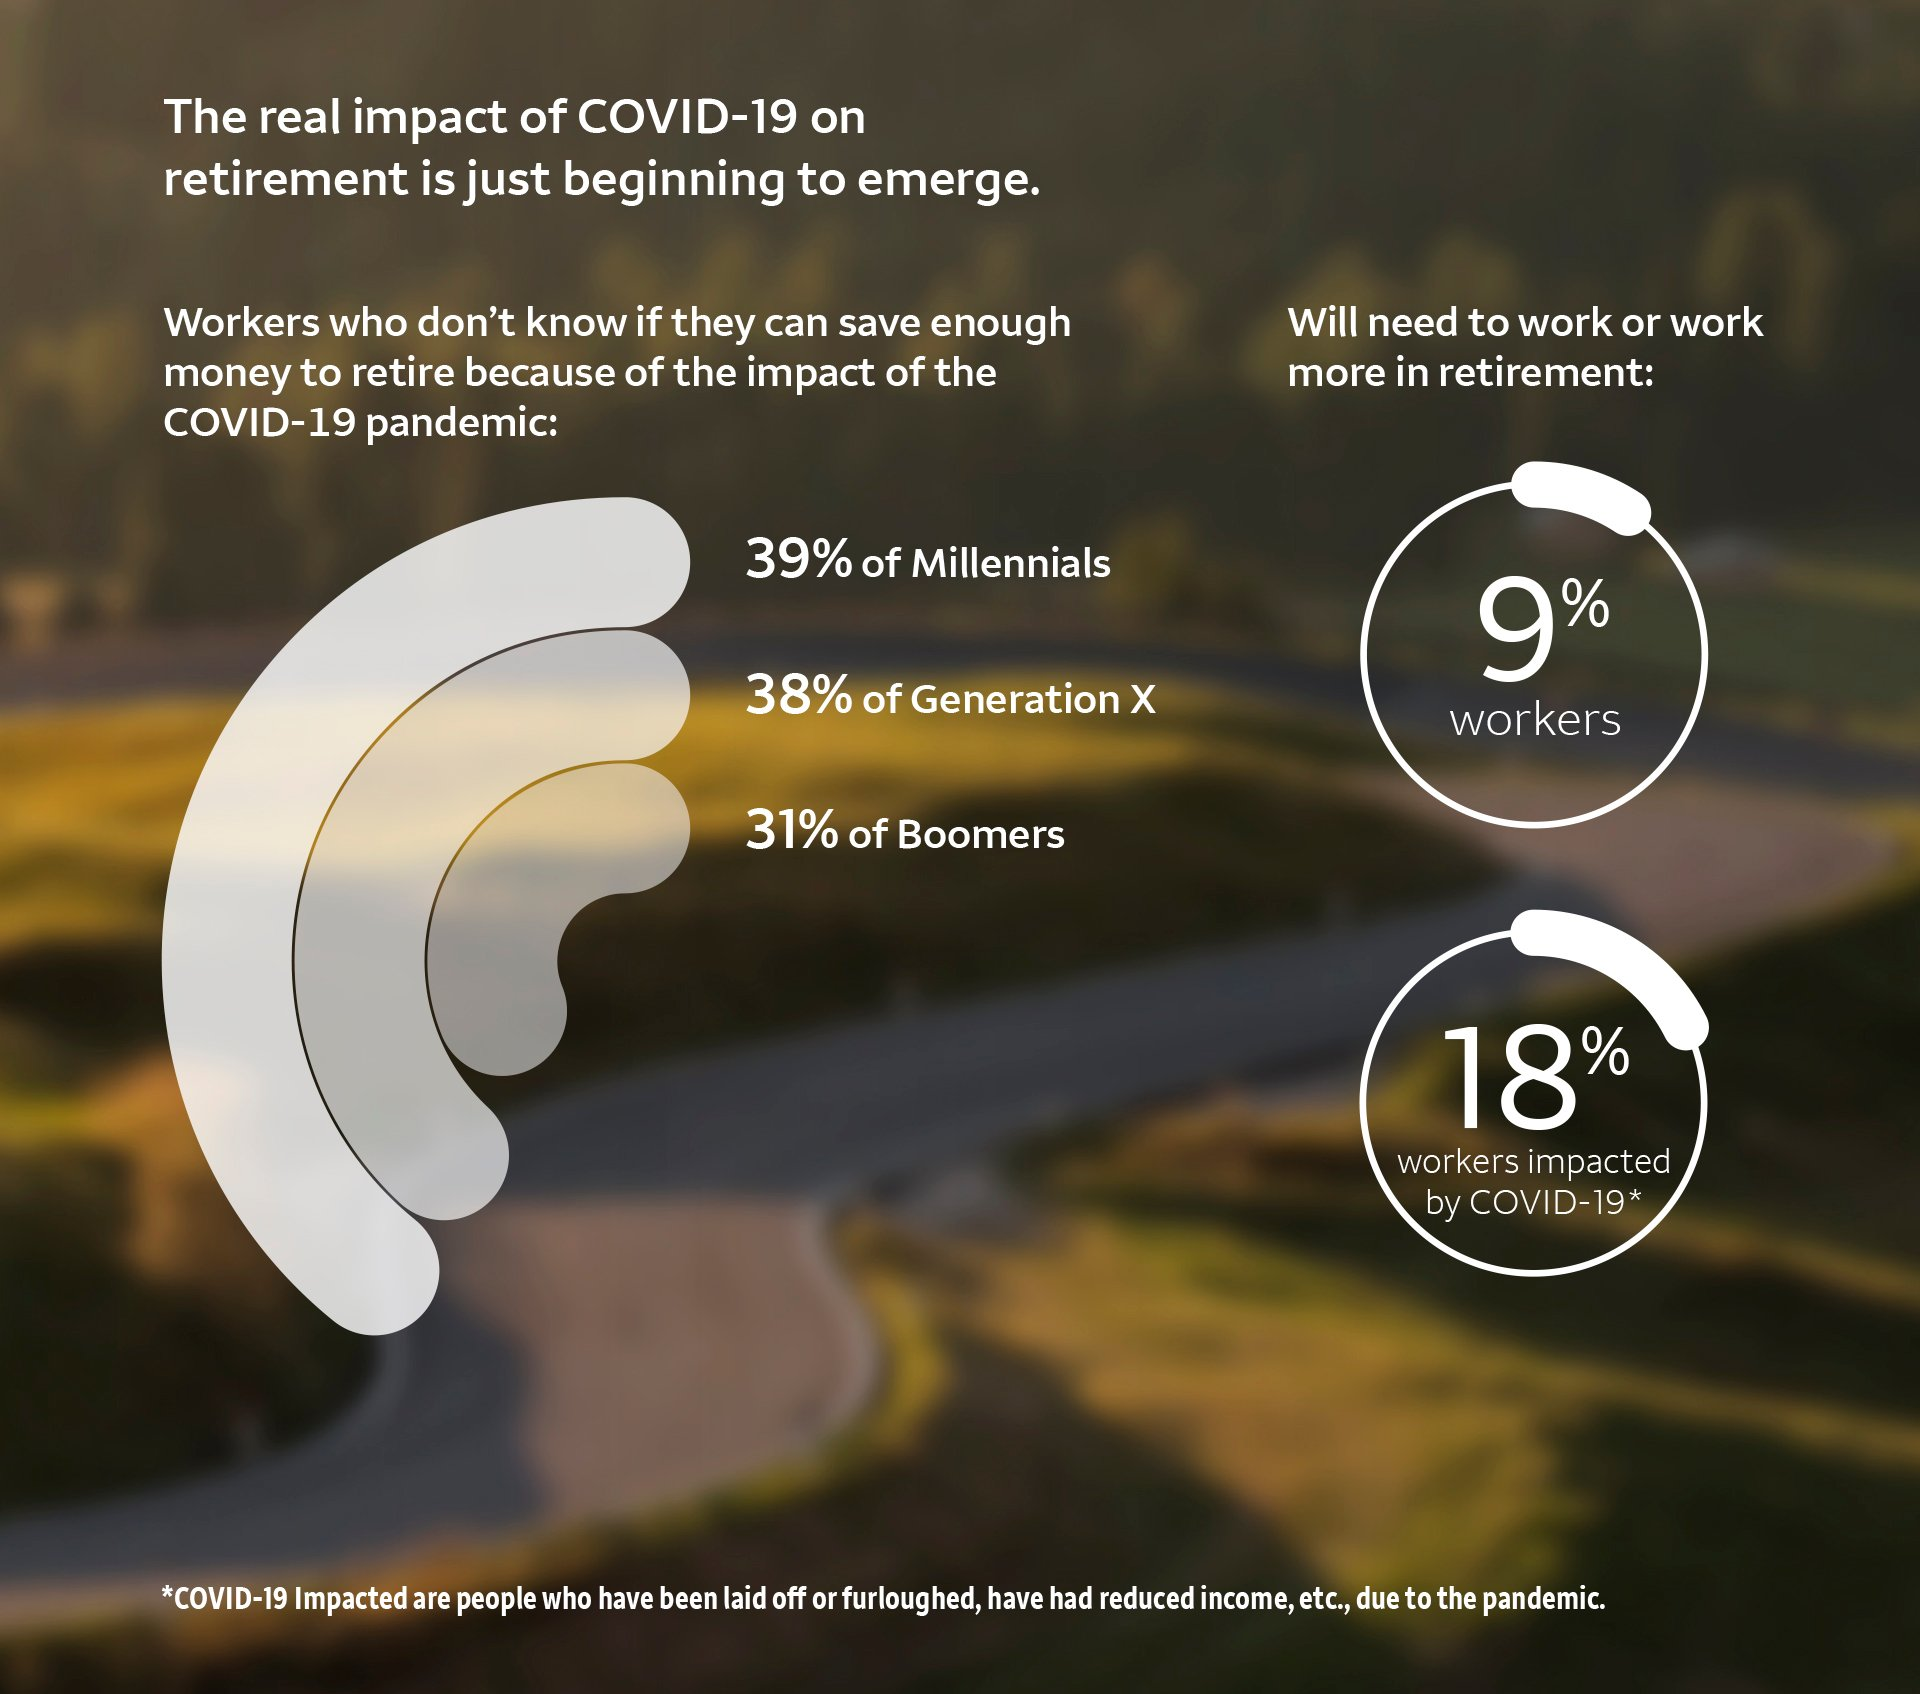 The real impact of COVID-19 on retirement is just beginning to emerge